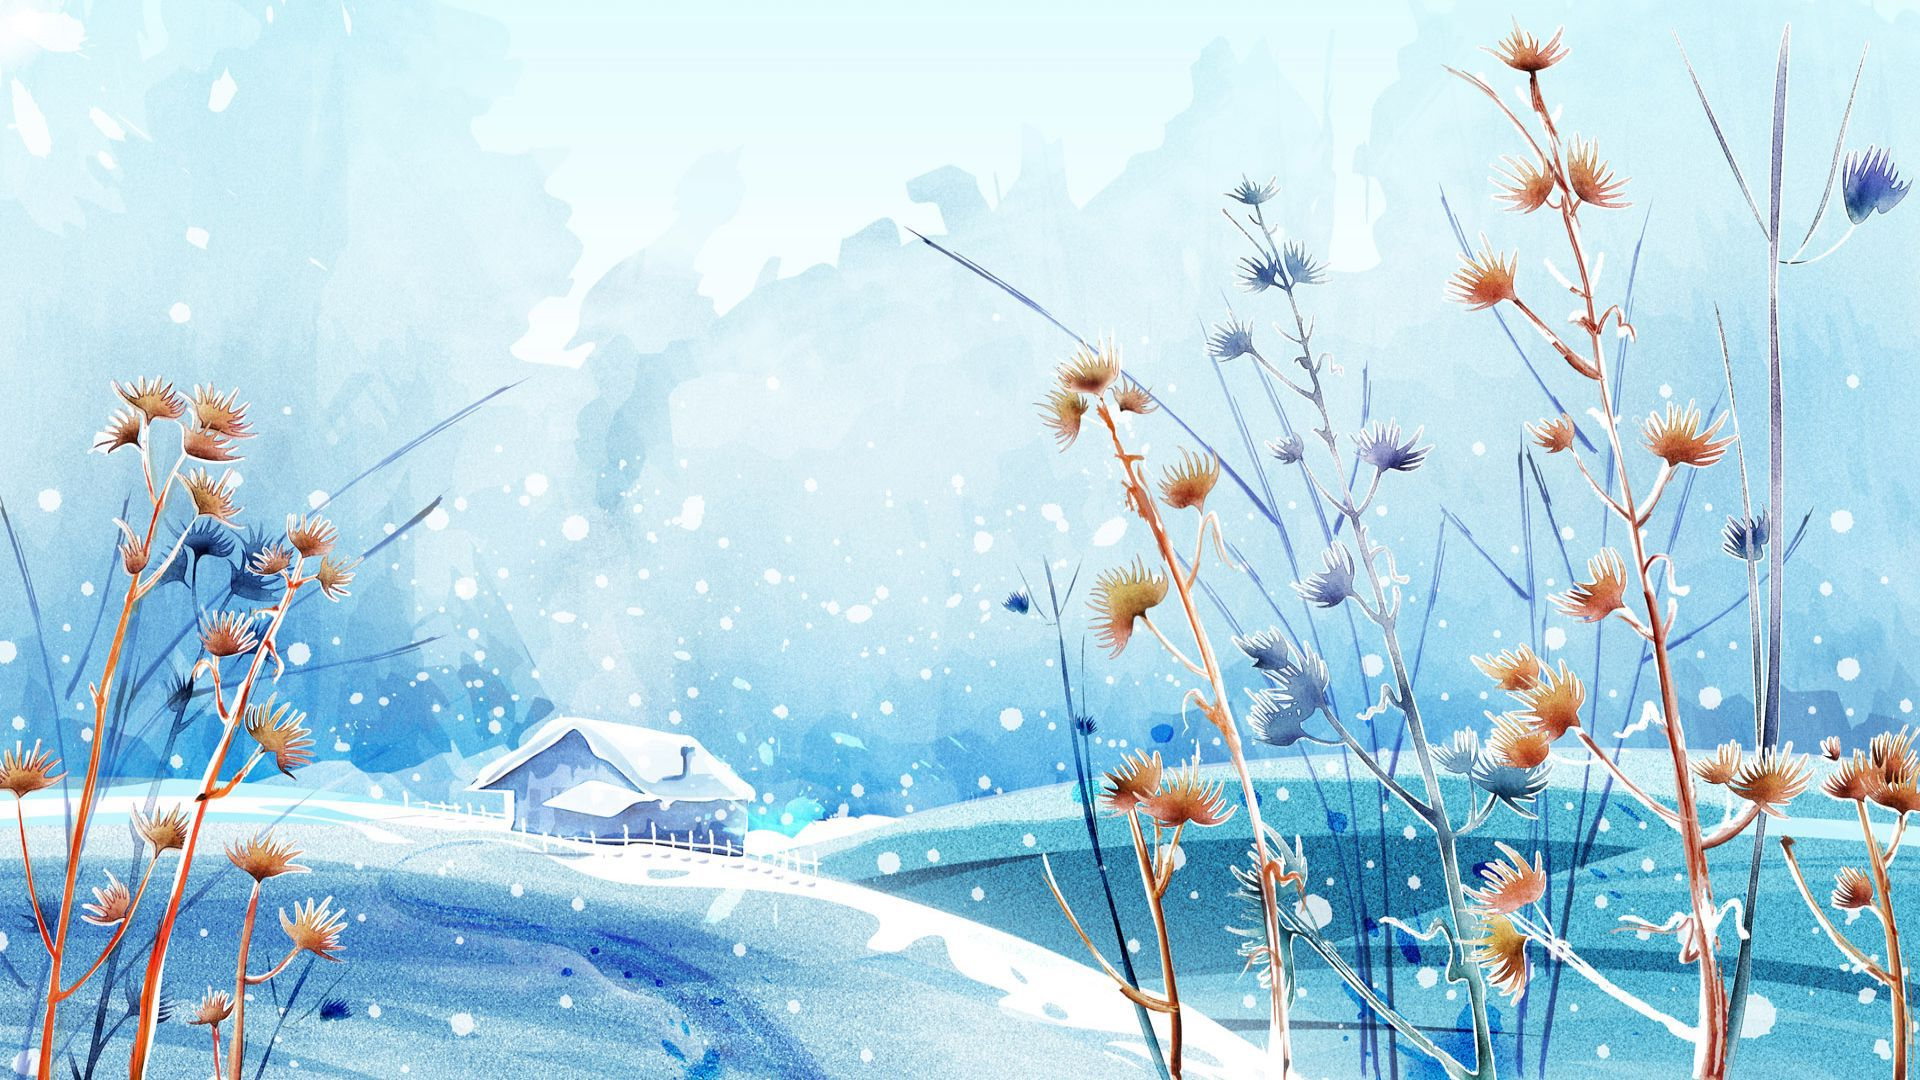 Nature Anime winter Scenery Background Wallpaper ...